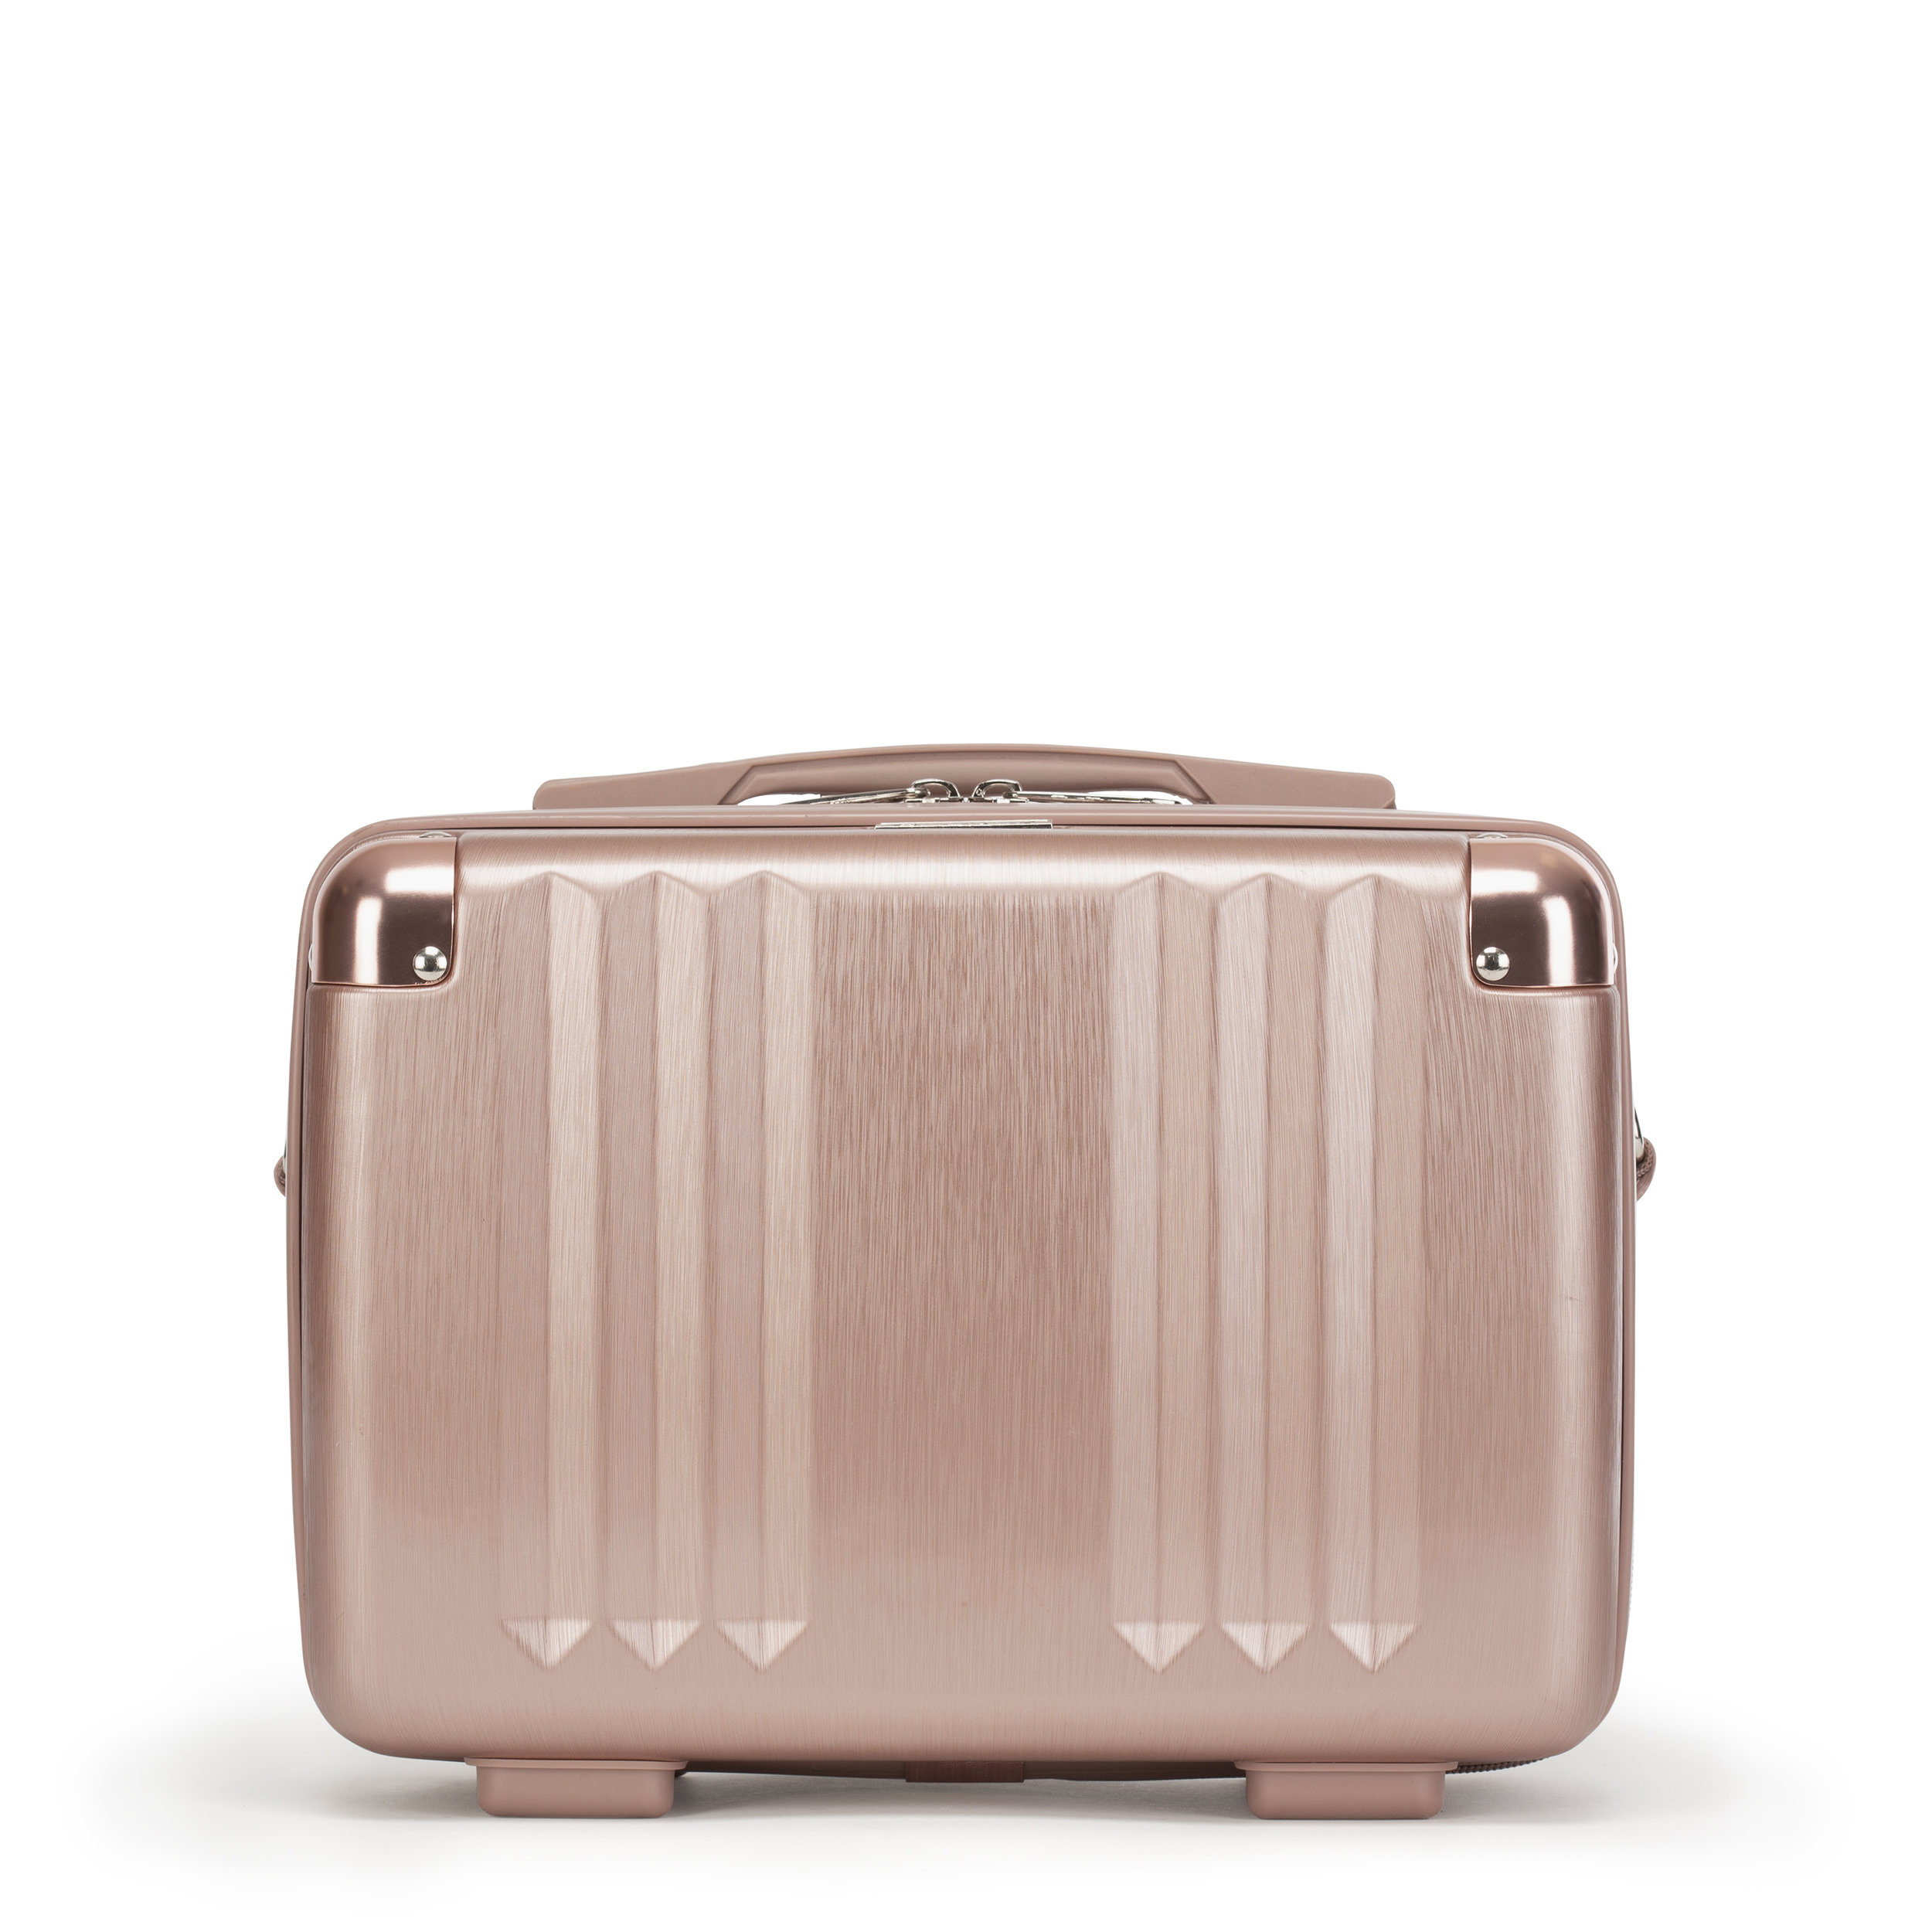 Miyakojima Island in Okinawa, Japan - Virgos can be perfectionists, so why not spend your Summer where attention to detail is embedded into the culture? You'll be happy you visited a place that appreciates both your hardworking attitude and your keen sense of planning.Vanity Case - Rose Gold